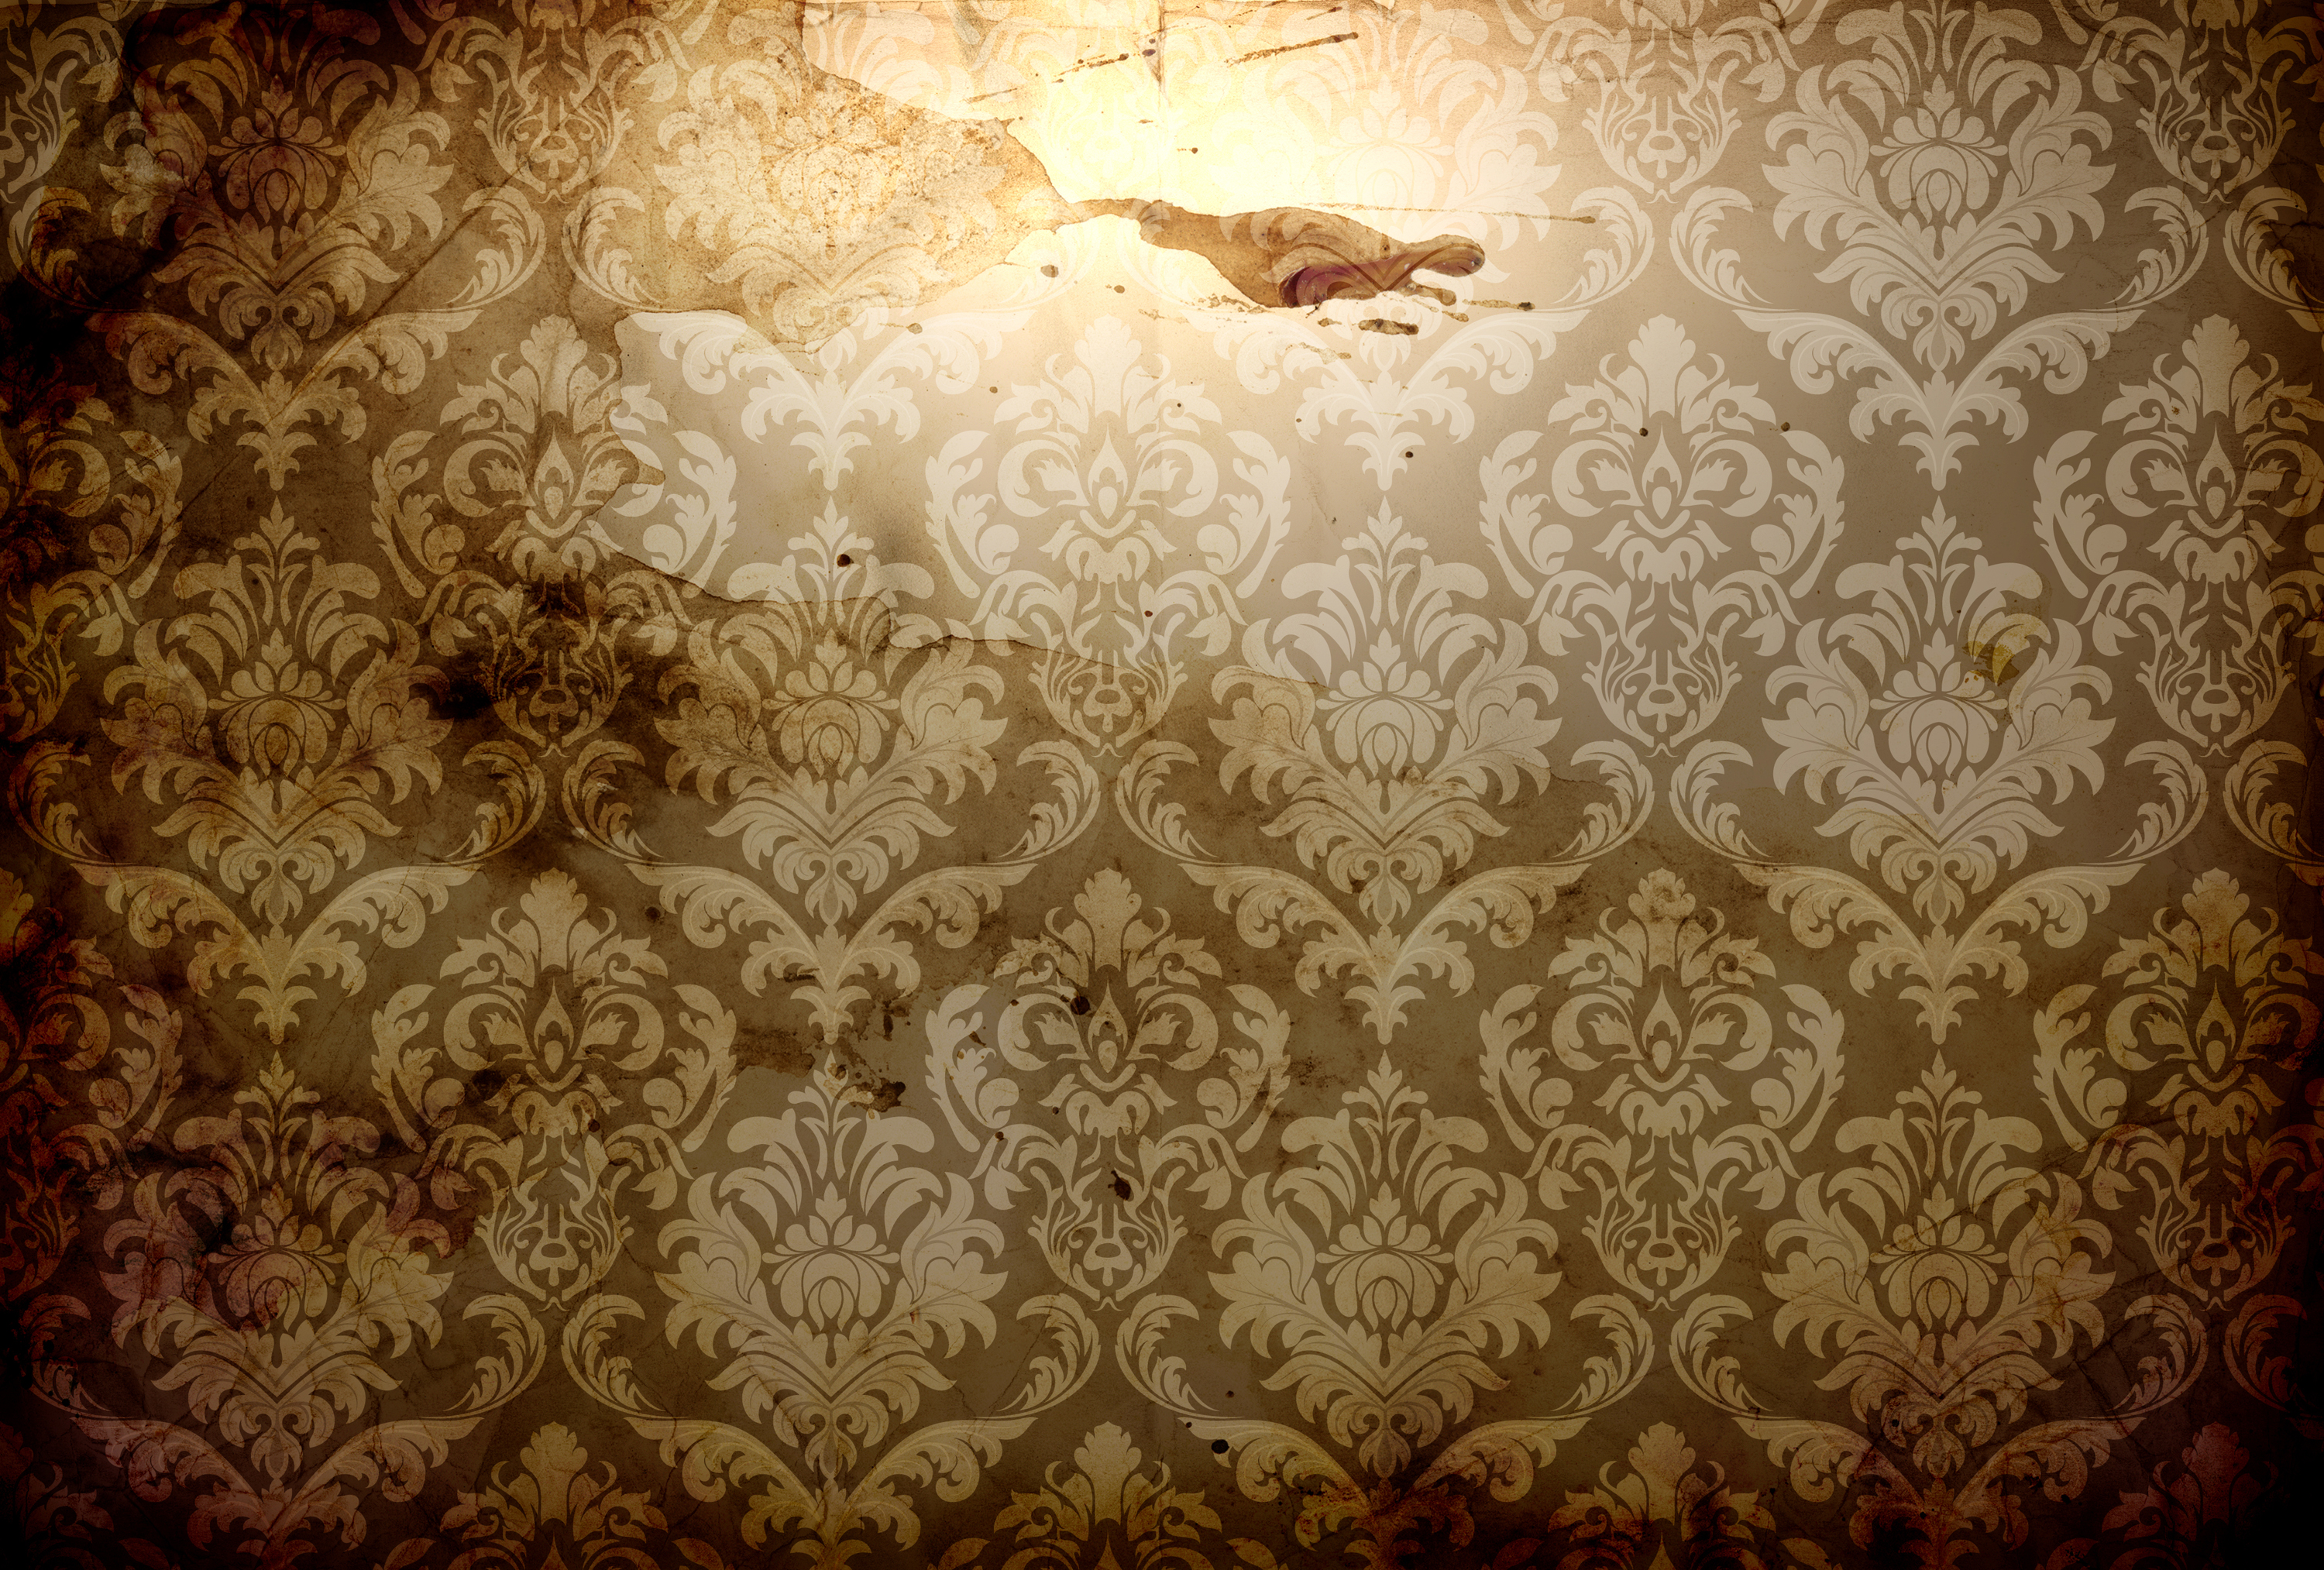 Vintage Christmas Backgrounds for Photoshop